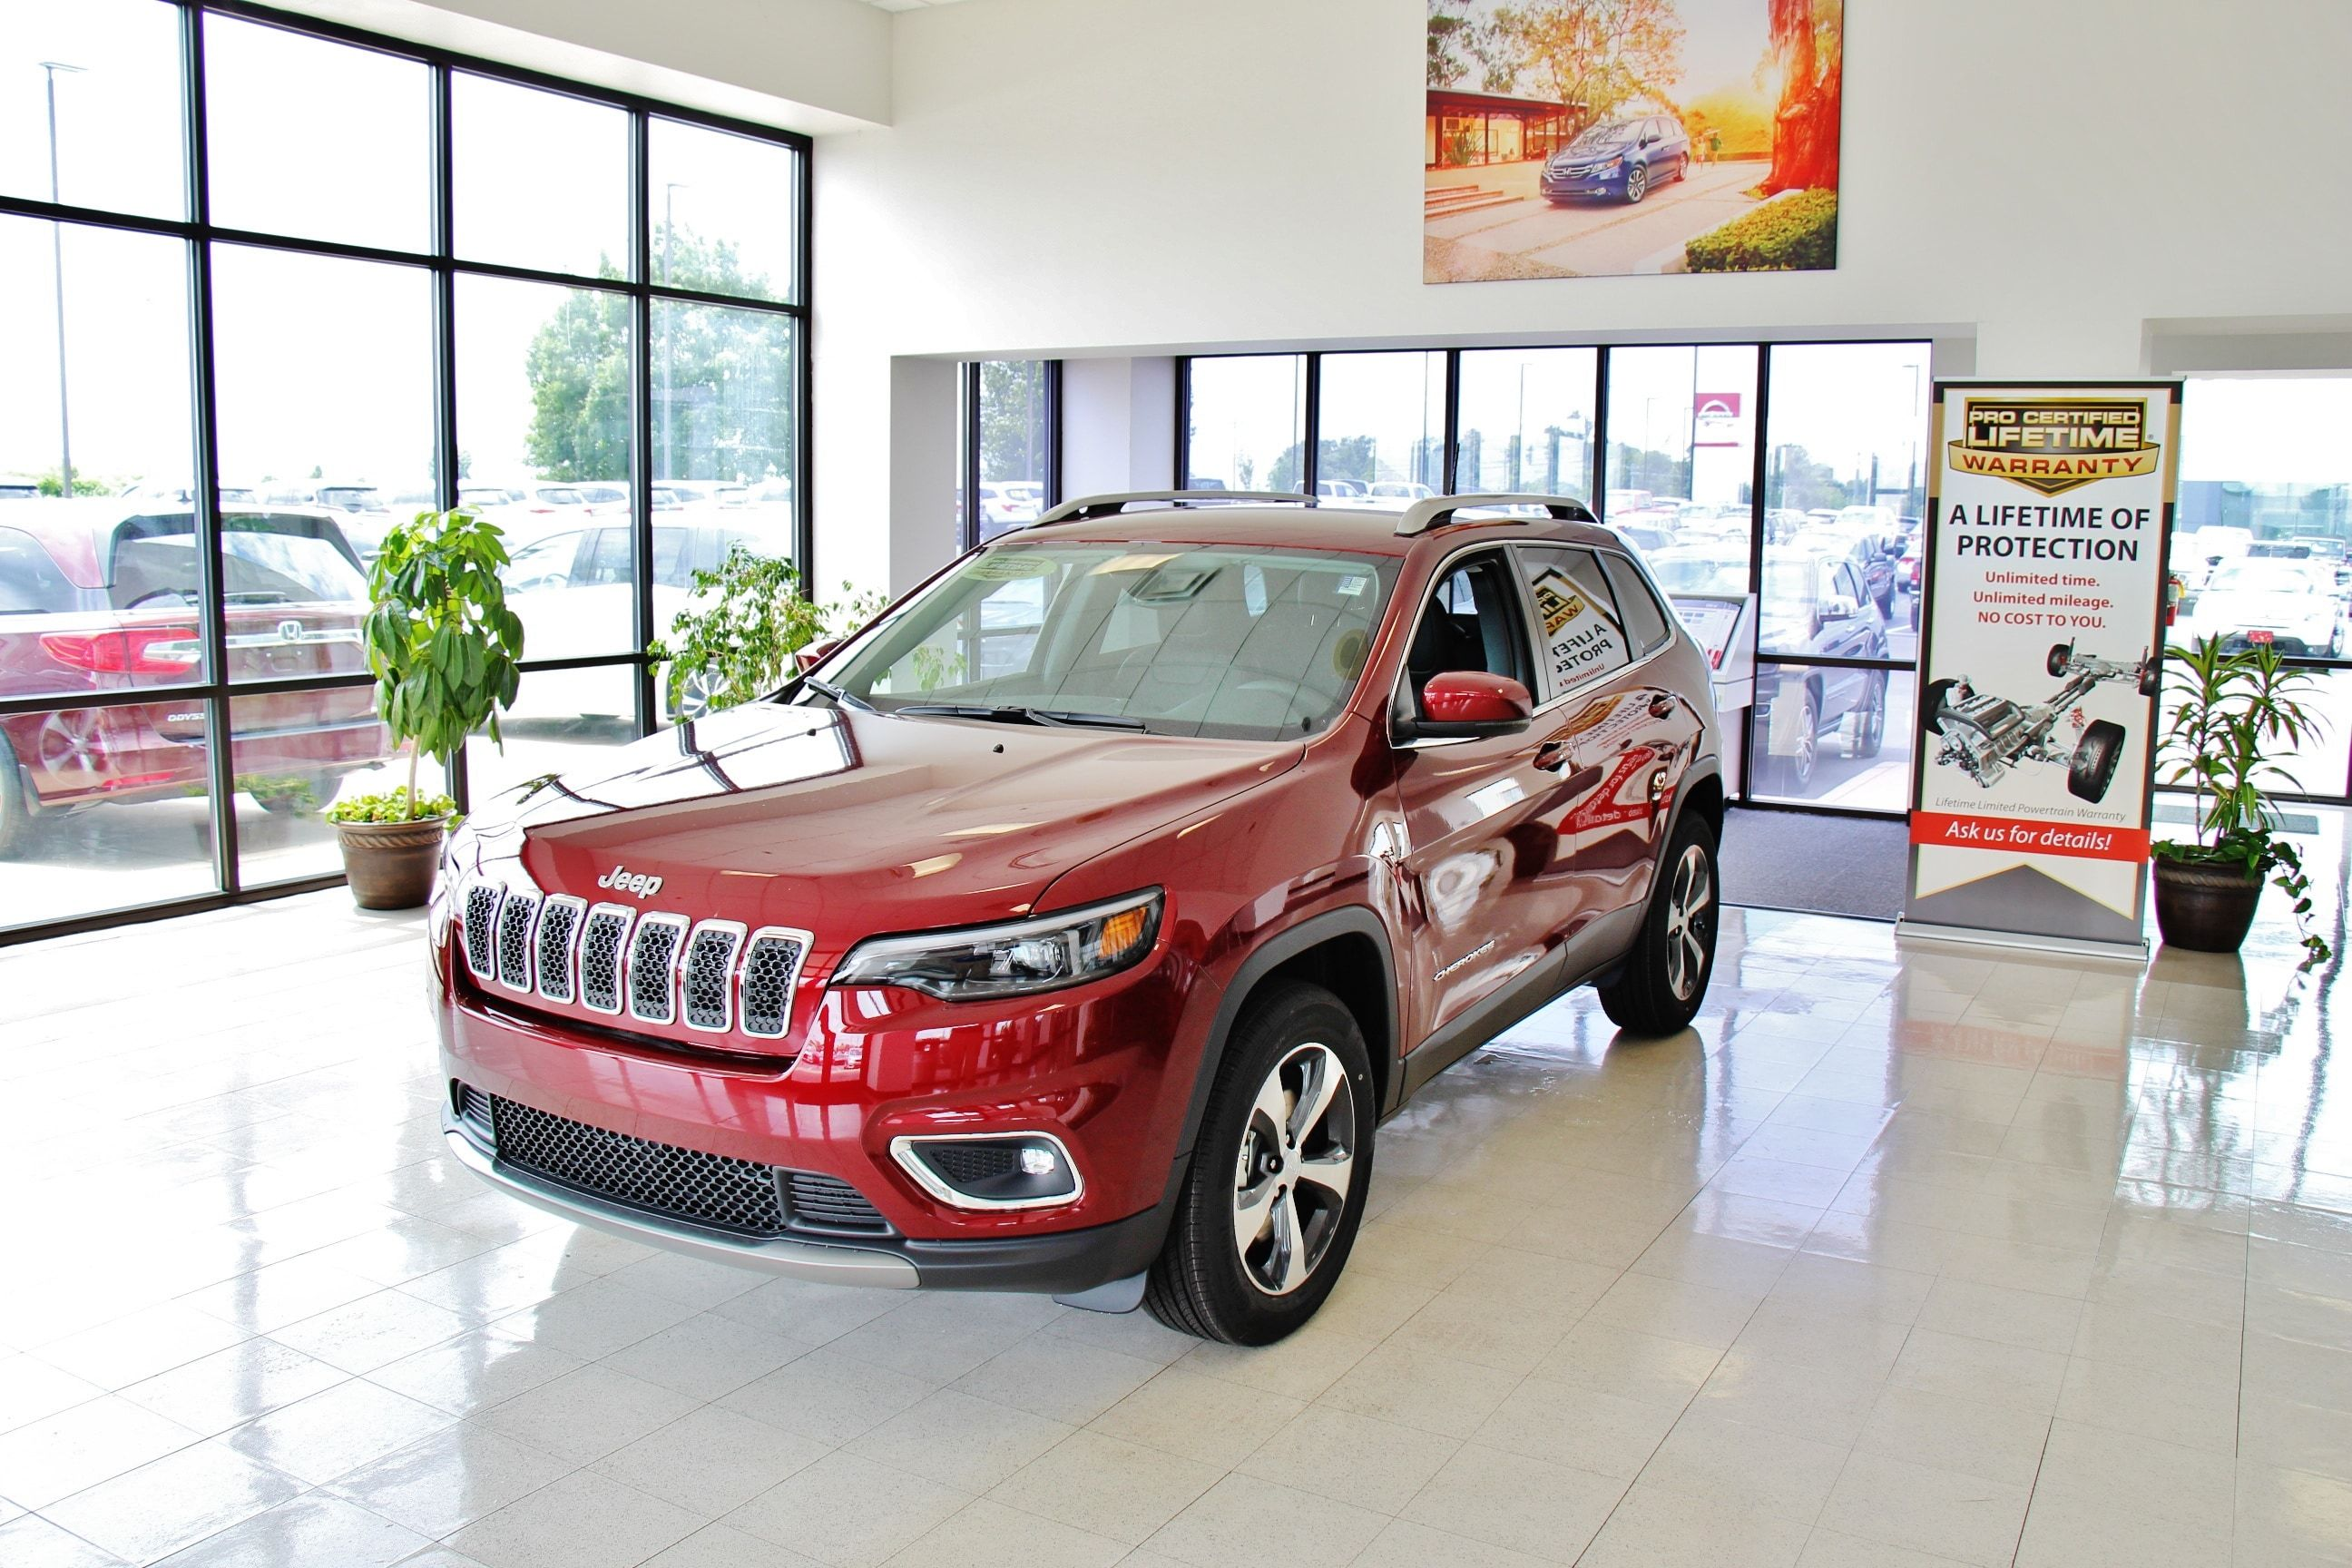 Hopkinsville Ky New Sisk Auto Mall Sells And Services Chrysler Dodge Jeep Ram Vehicles In The Greater Hopkinsville A Best Car Insurance Classic Jeeps Jeep